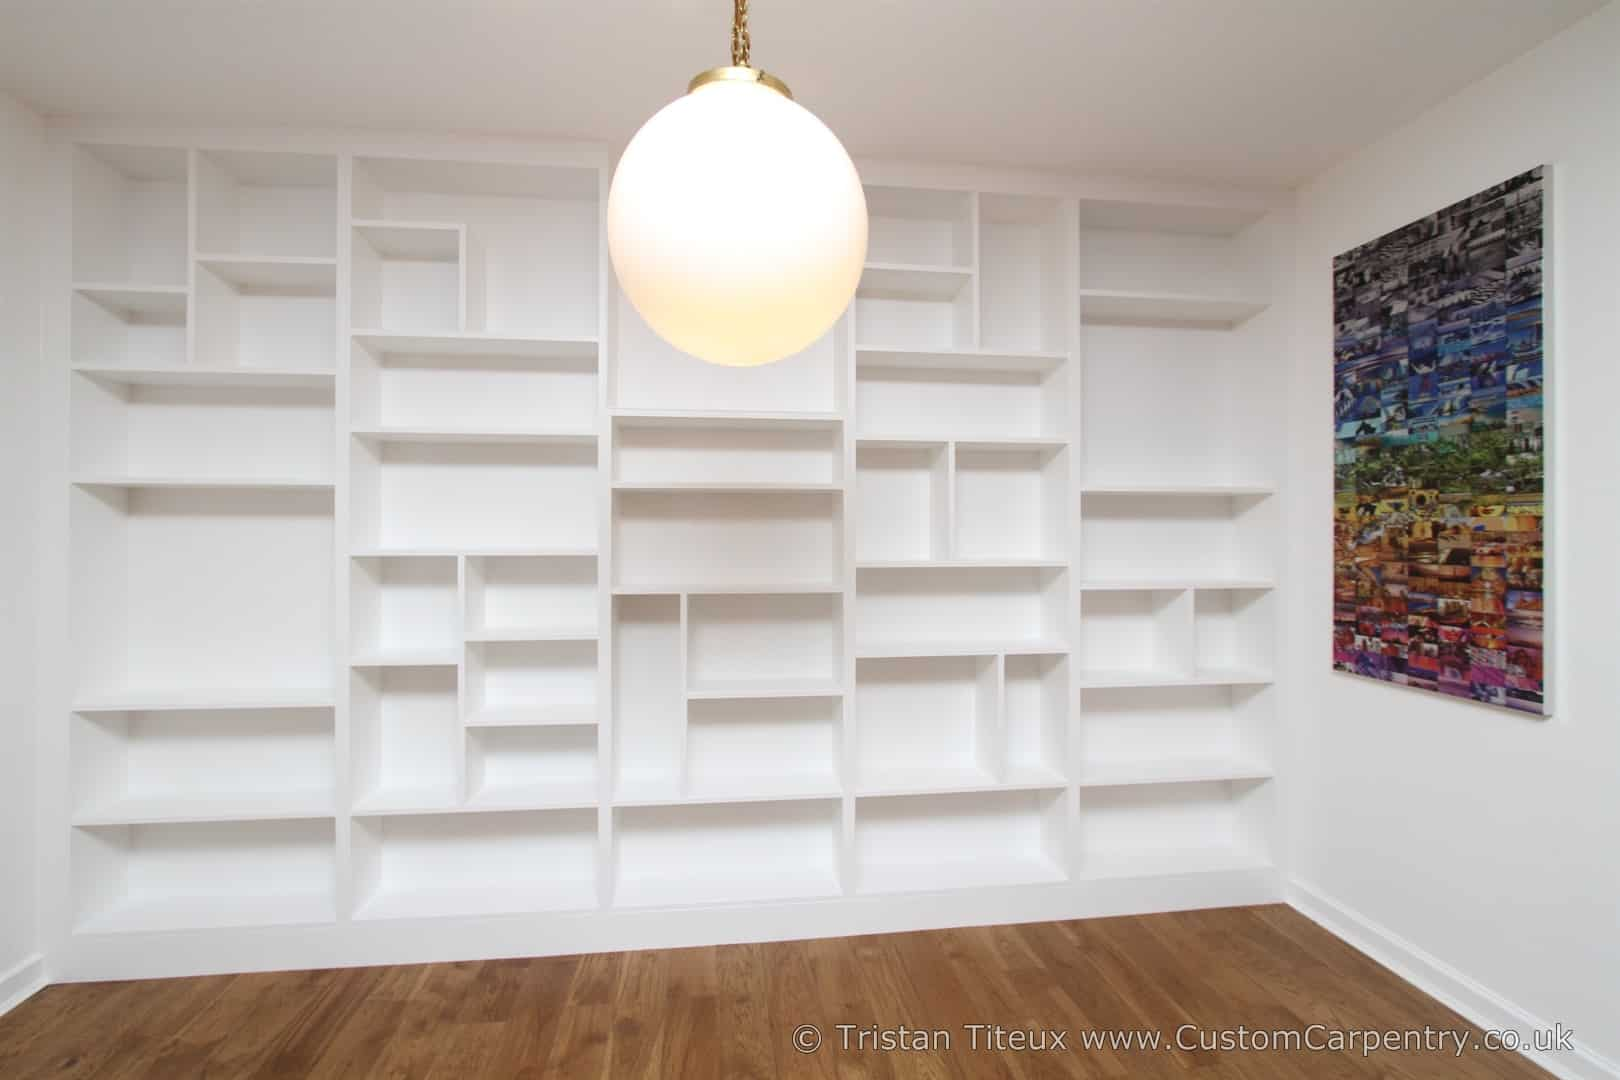 Take A Look At Our Gallery To See Just How Bespoke Shelving Can Make Difference Your Home We Ed Furniture Clients Love